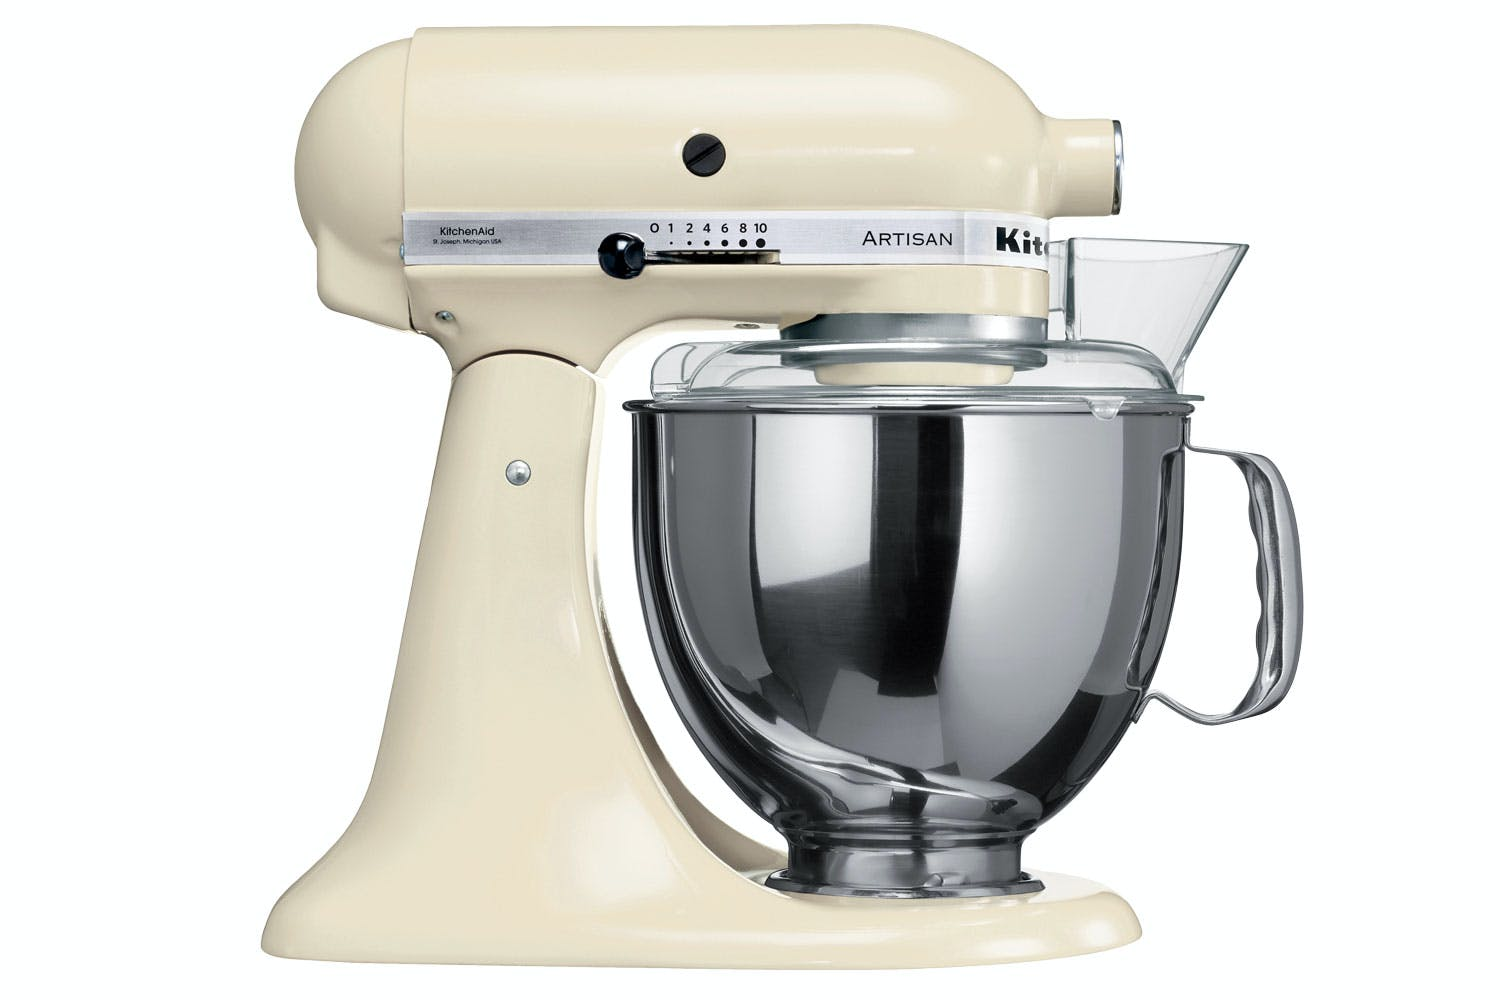 KitchenAid® Artisan Food Mixer | 5KSM150PSBAC